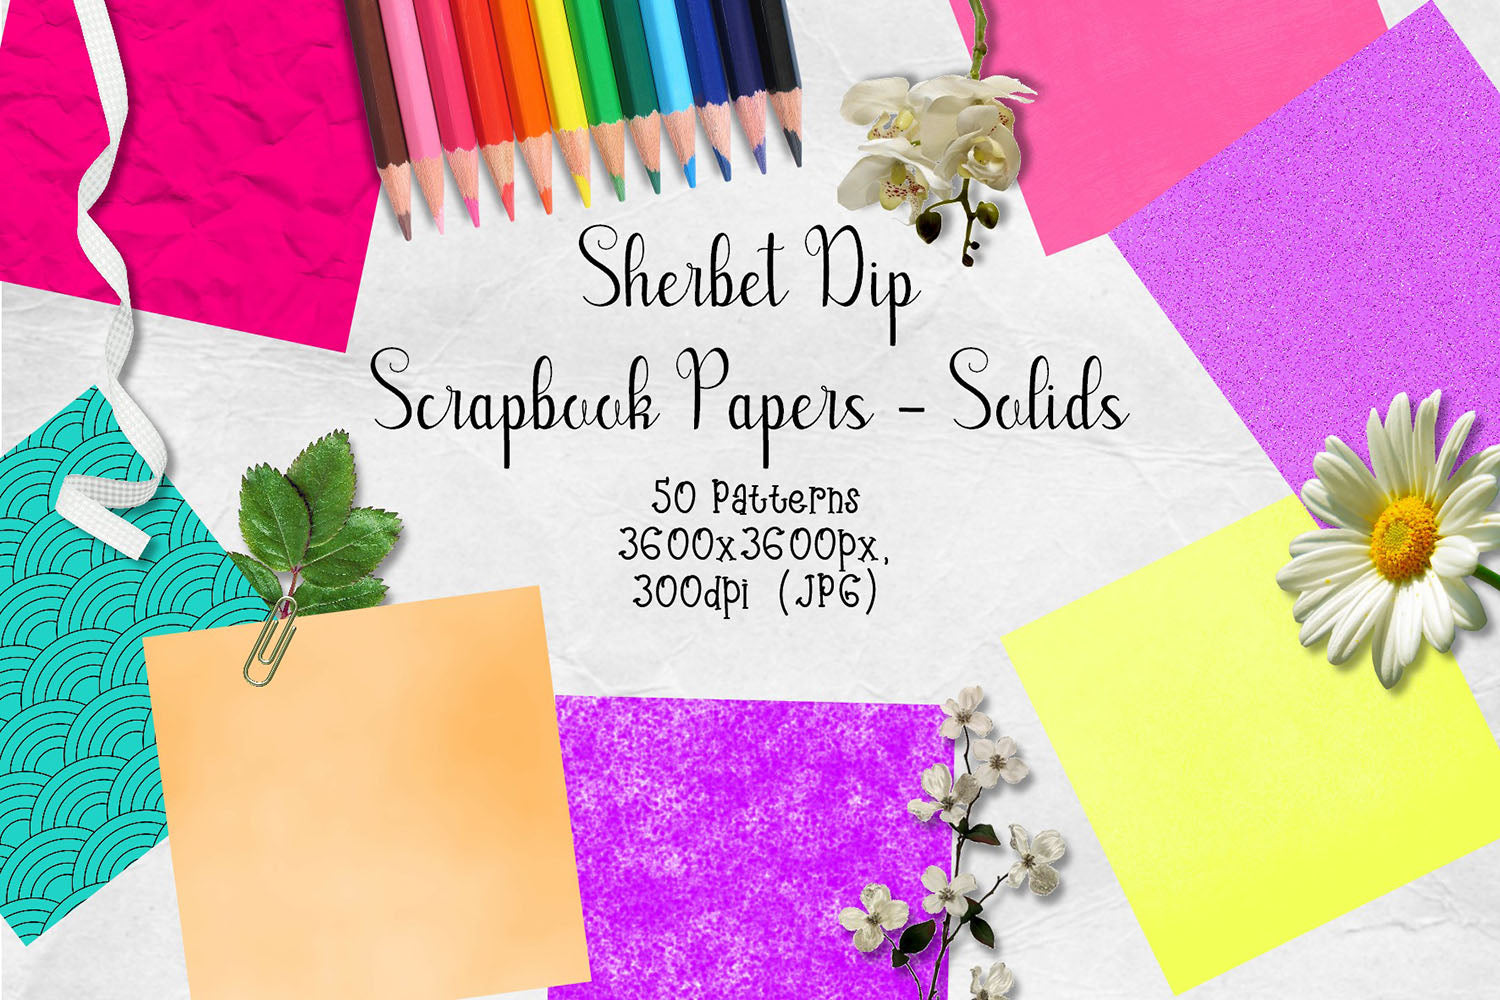 Sherbet Dip CU Scrapbook Papers - Solids